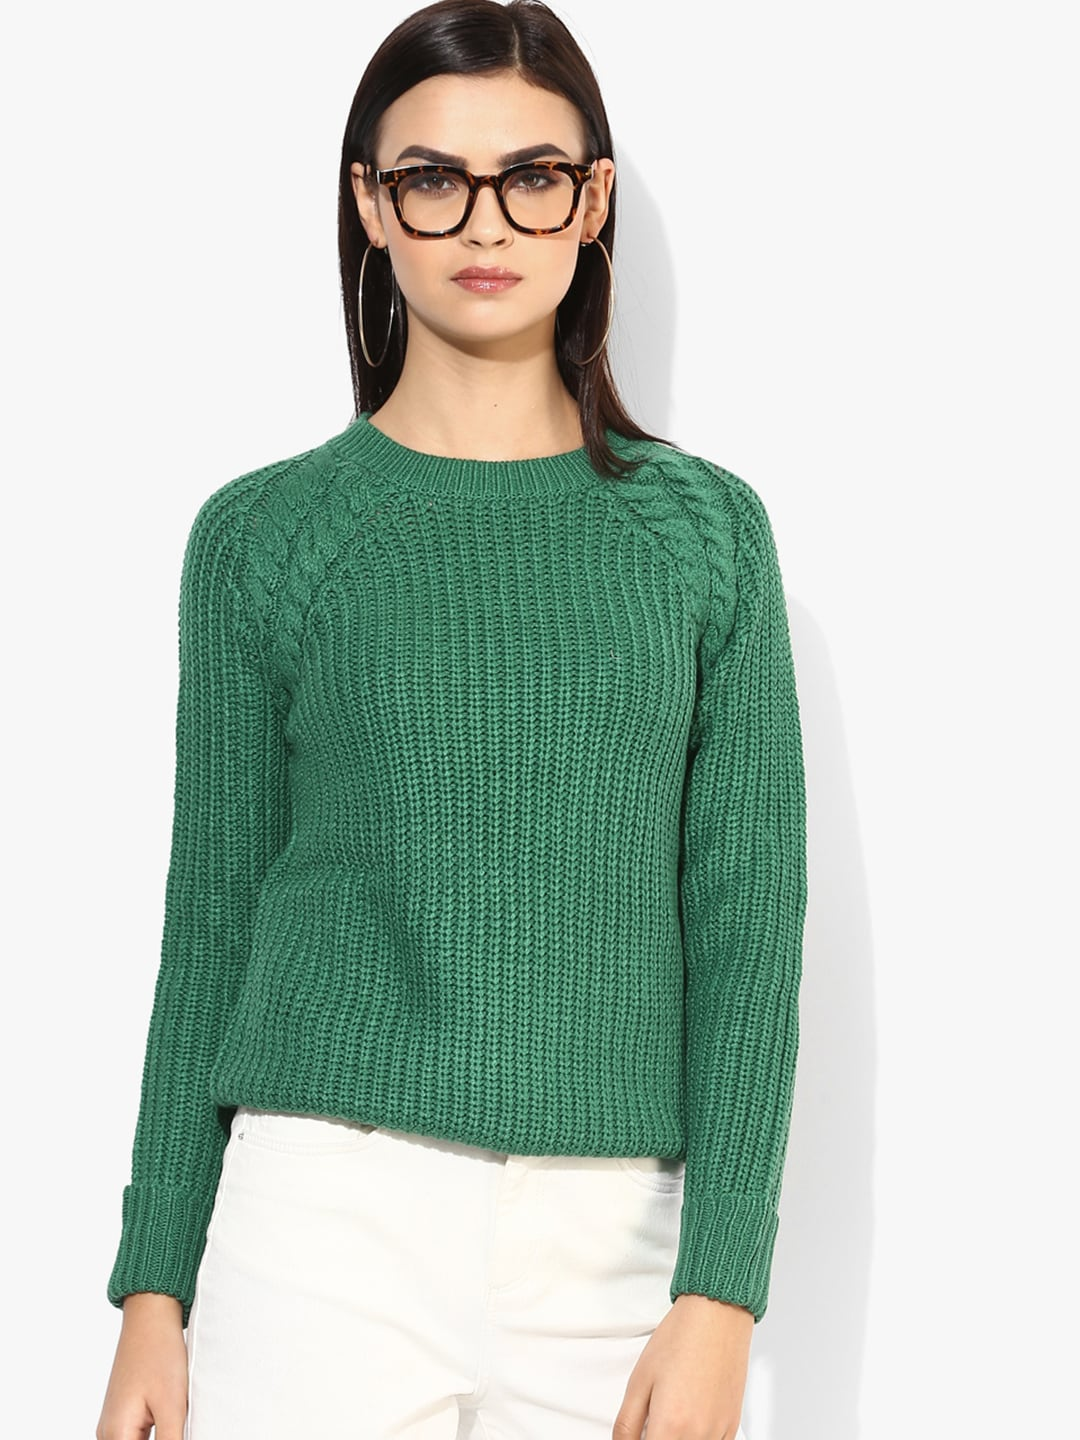 a7995ec96f Sweaters for Women - Buy Womens Sweaters Online - Myntra